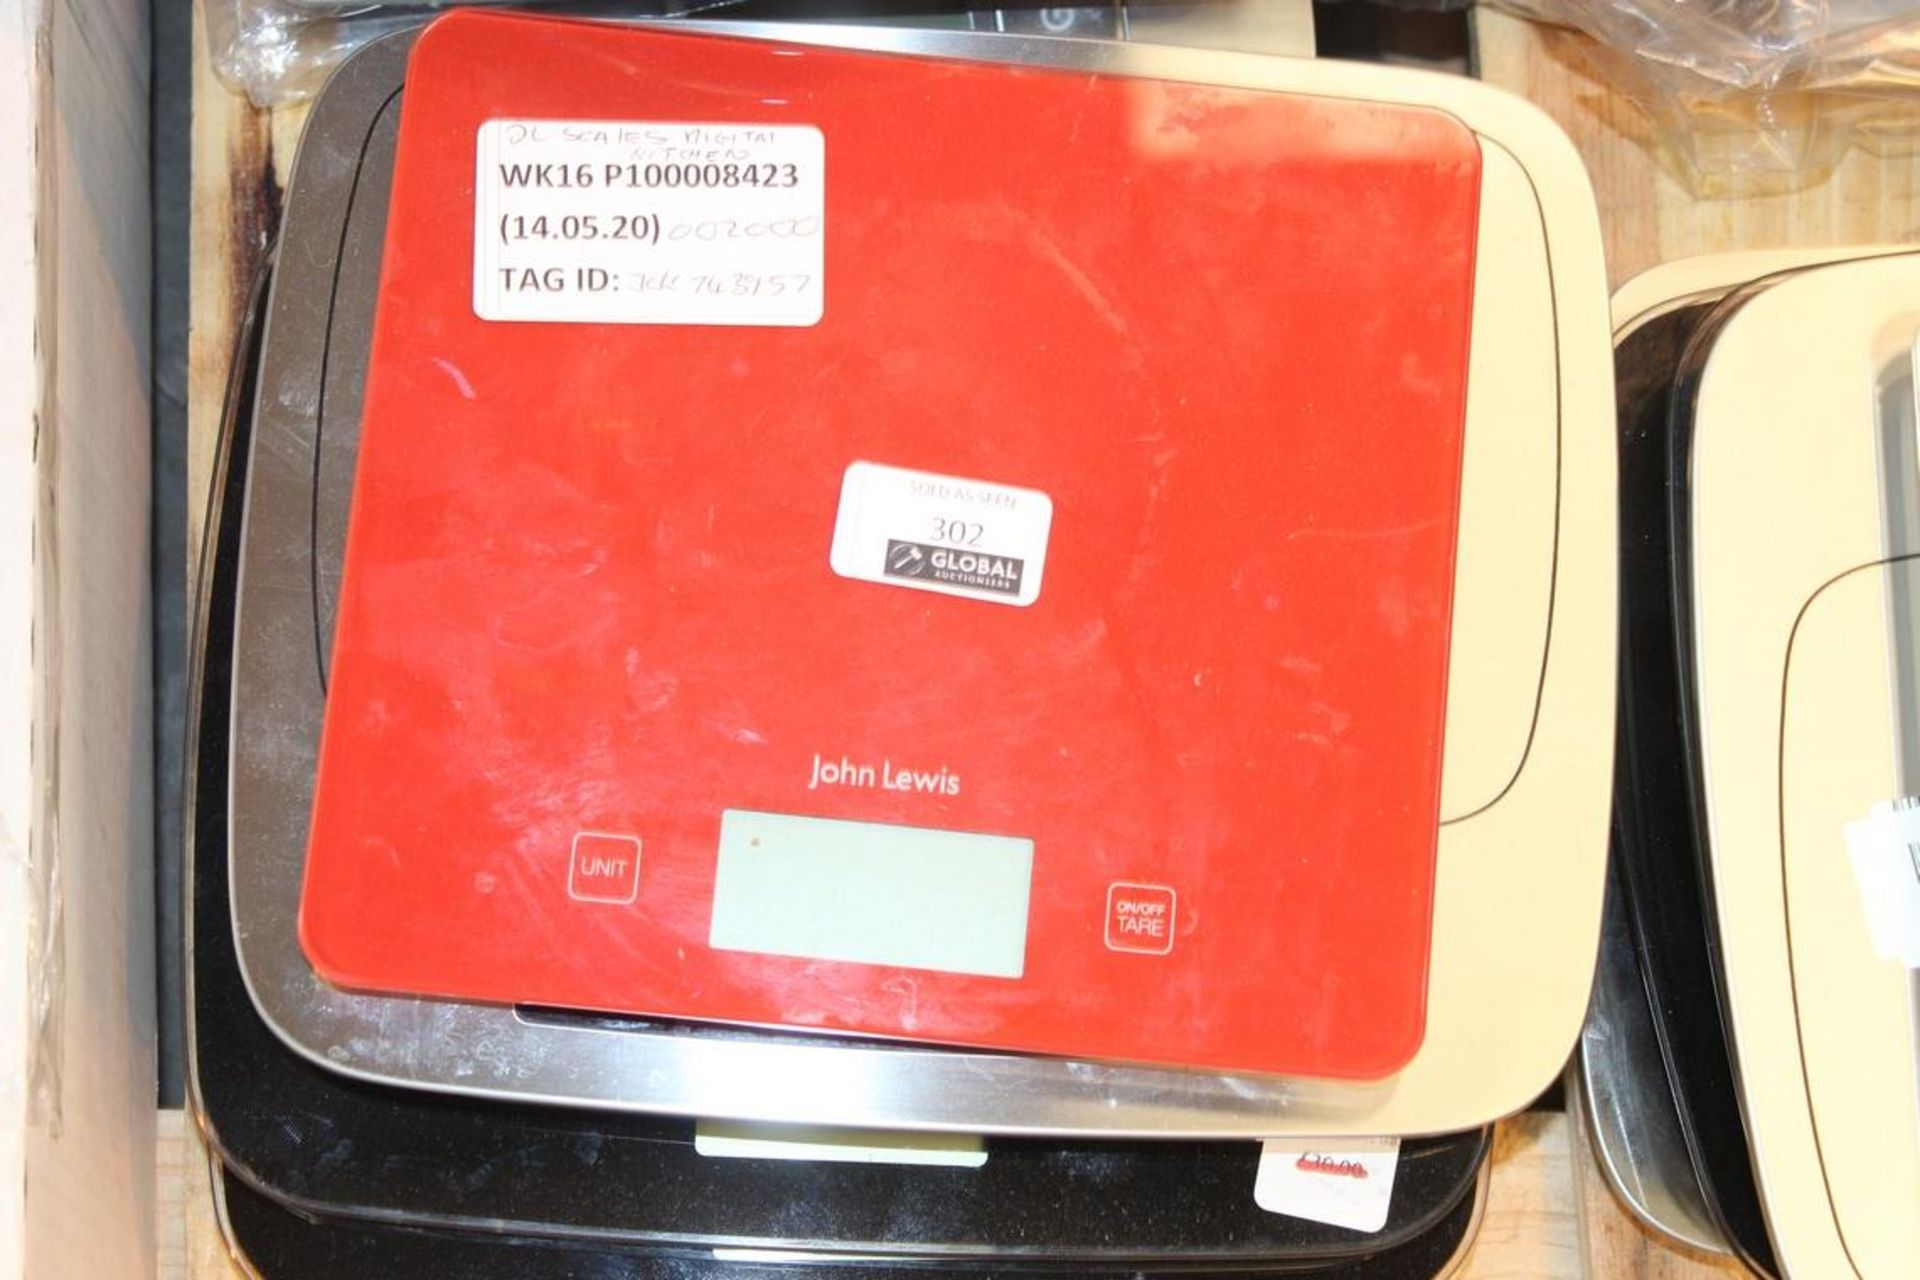 Lot 302 - Assorted Unboxed Pairs Of Digital Weighing Scales RRP £20-£30 Each (743983) (743039) (743942) (